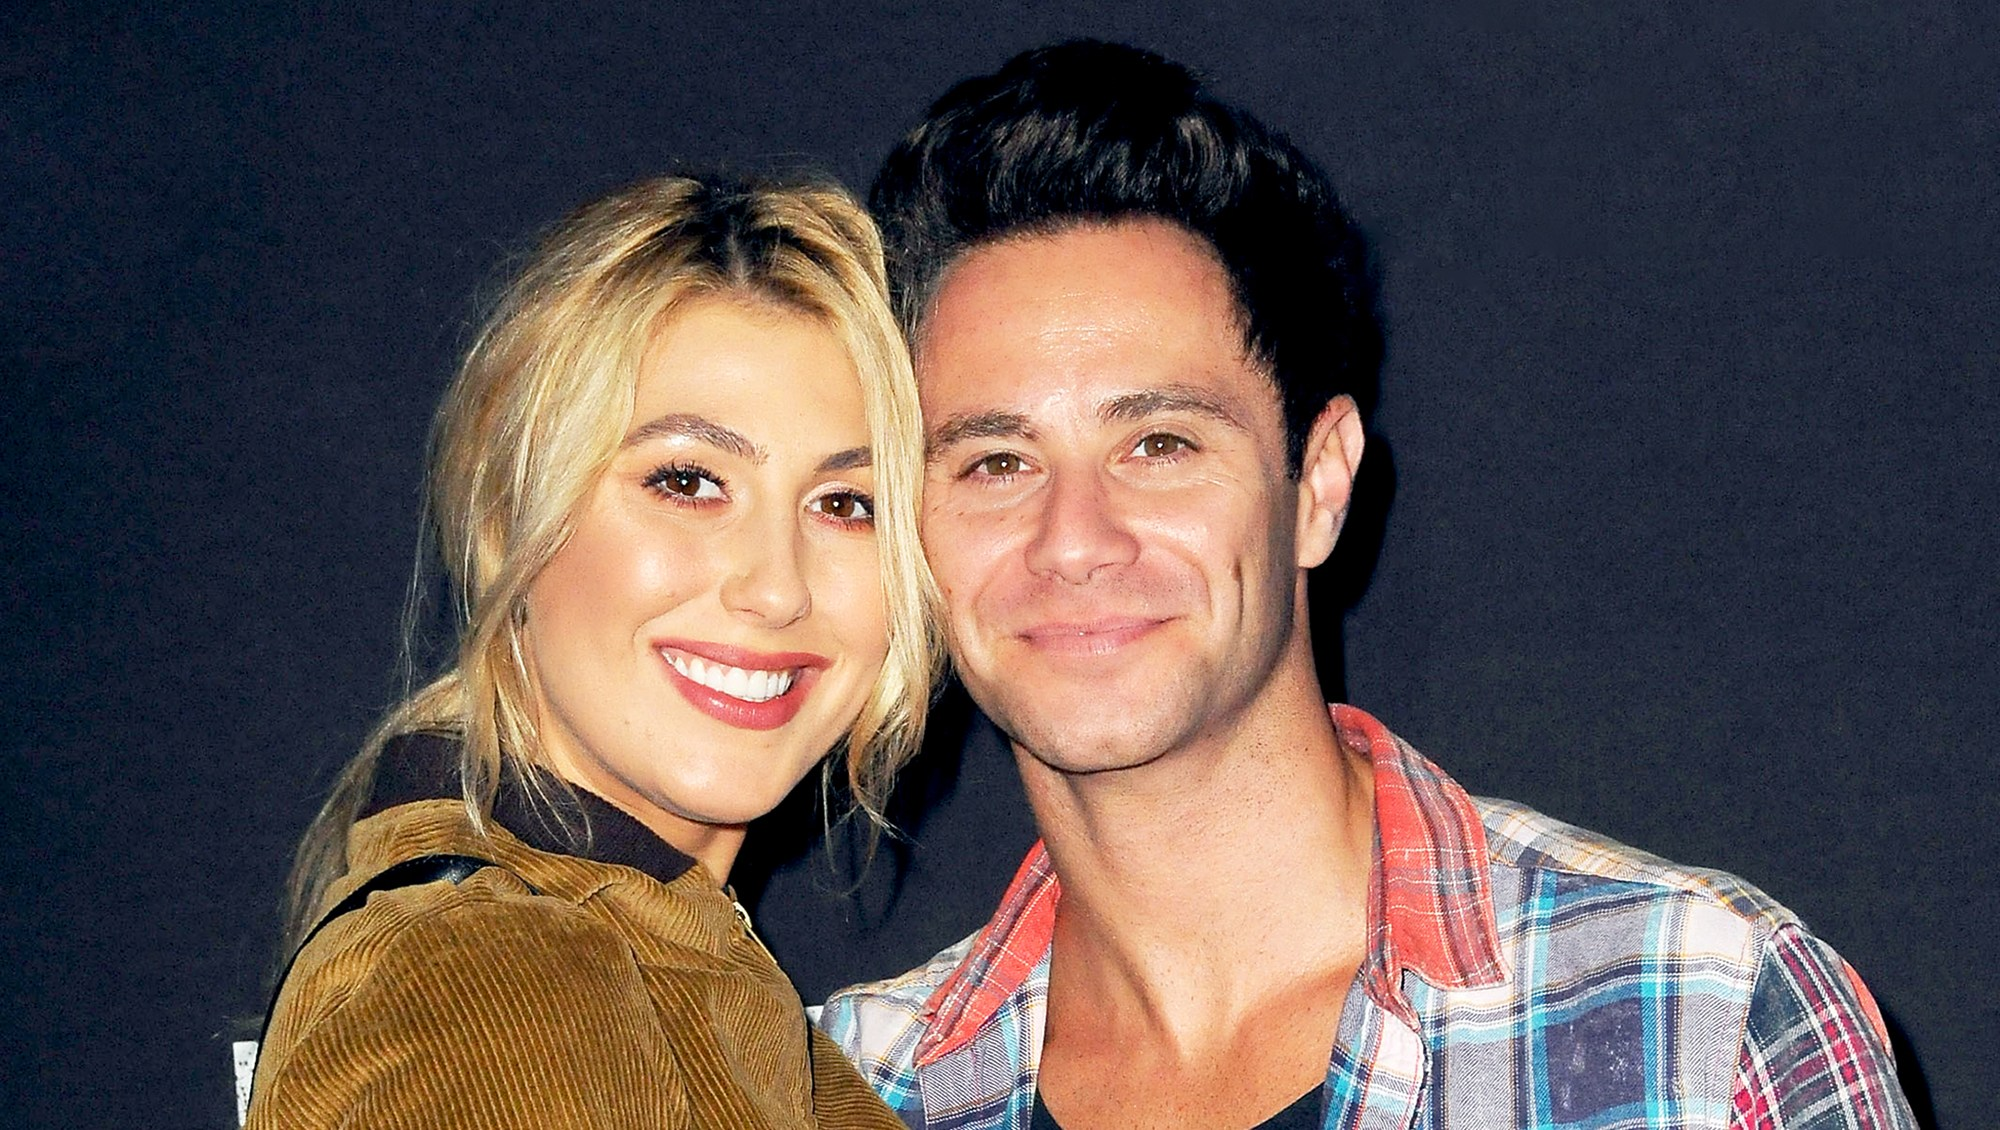 Emma Slater and Sasha Farber attend Knott's Scary Farm and Instagram Celebrity Night at Knott's Berry Farm in Buena Park, California.